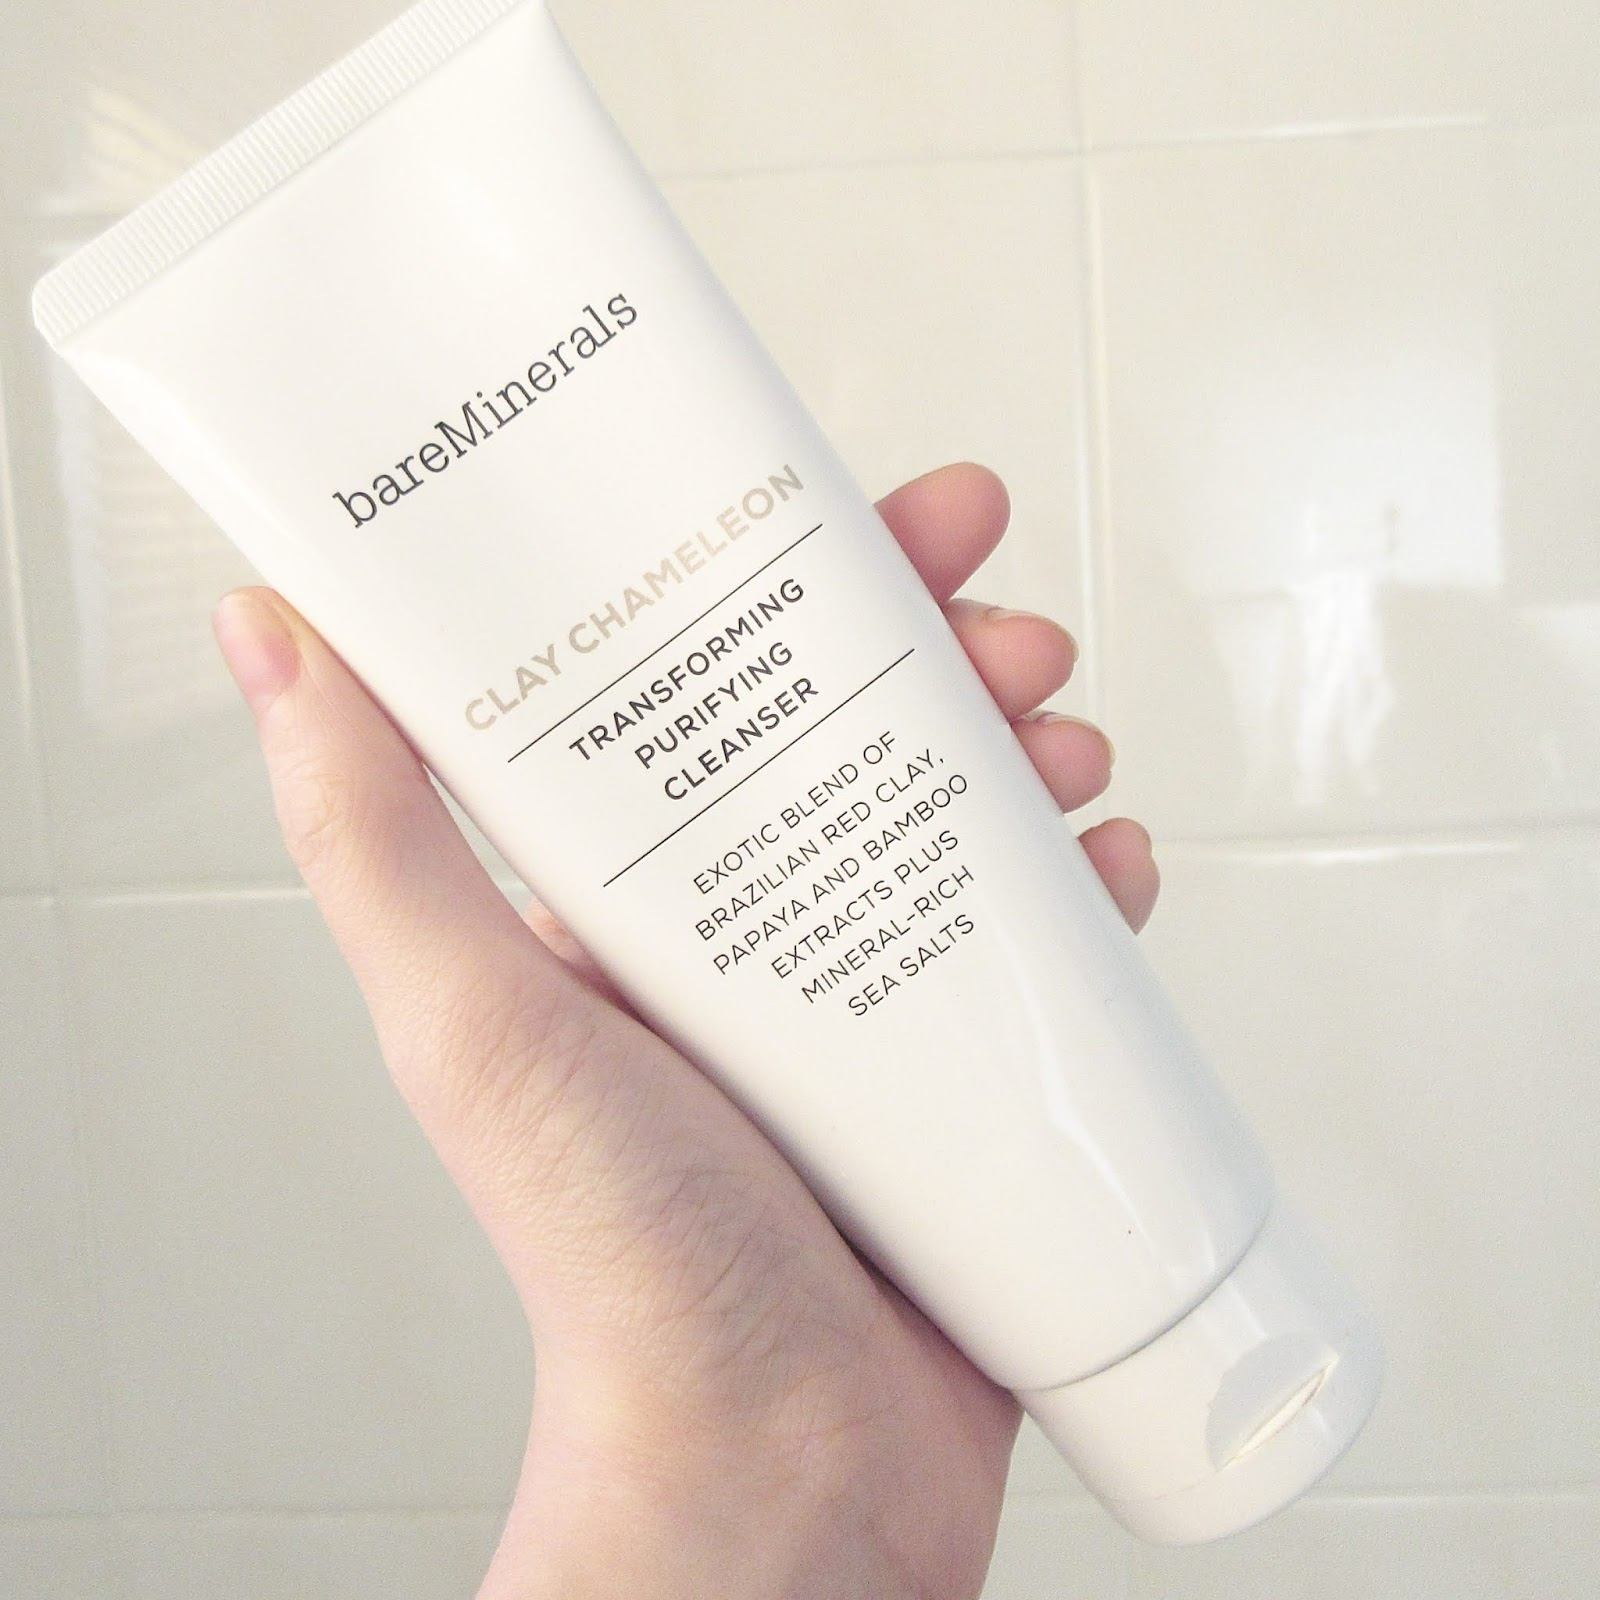 Bare Minerals Clay Chameleon Transforming Purifying Cleanser Review